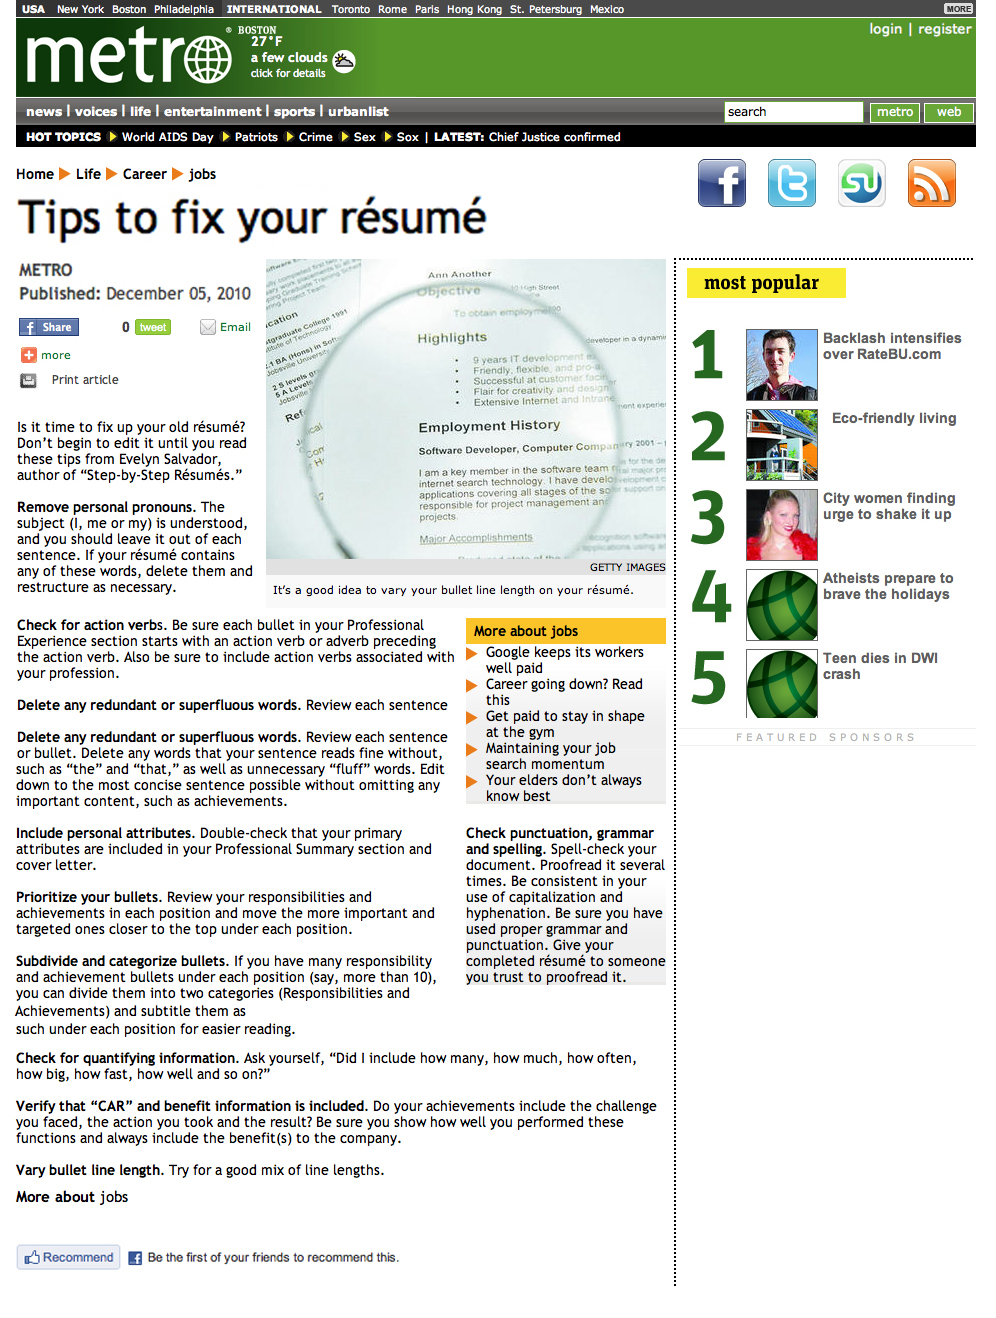 metro - tips to fix your resume.jpg